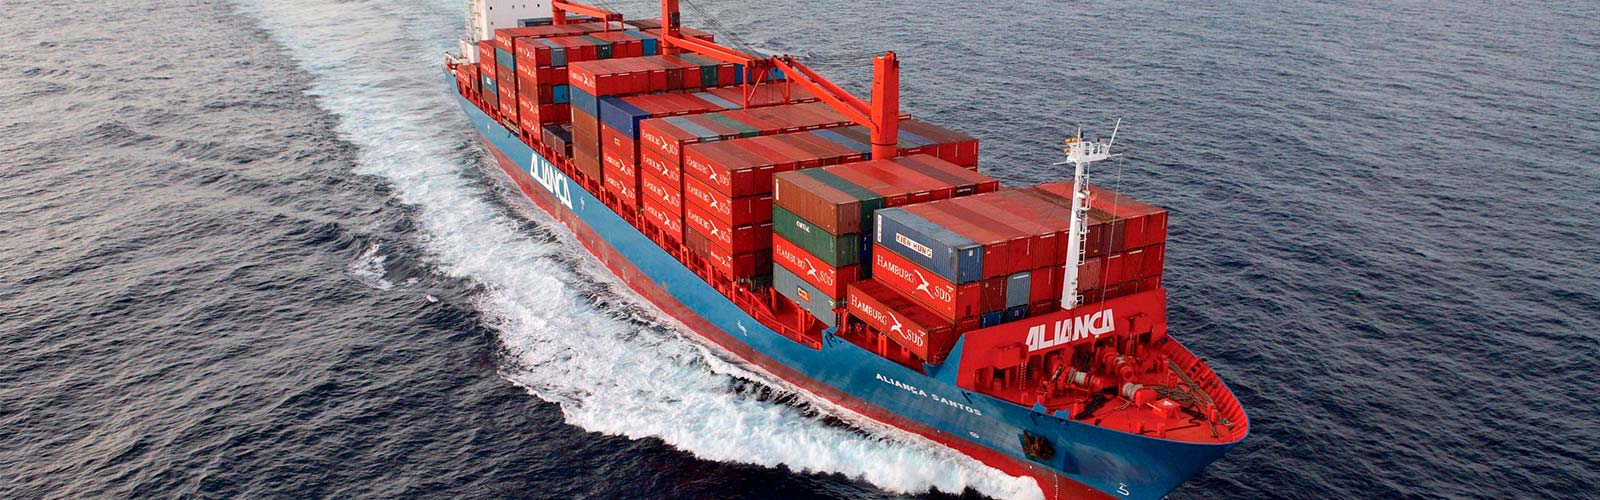 JB Marine is a totally independent broking house, operating globally